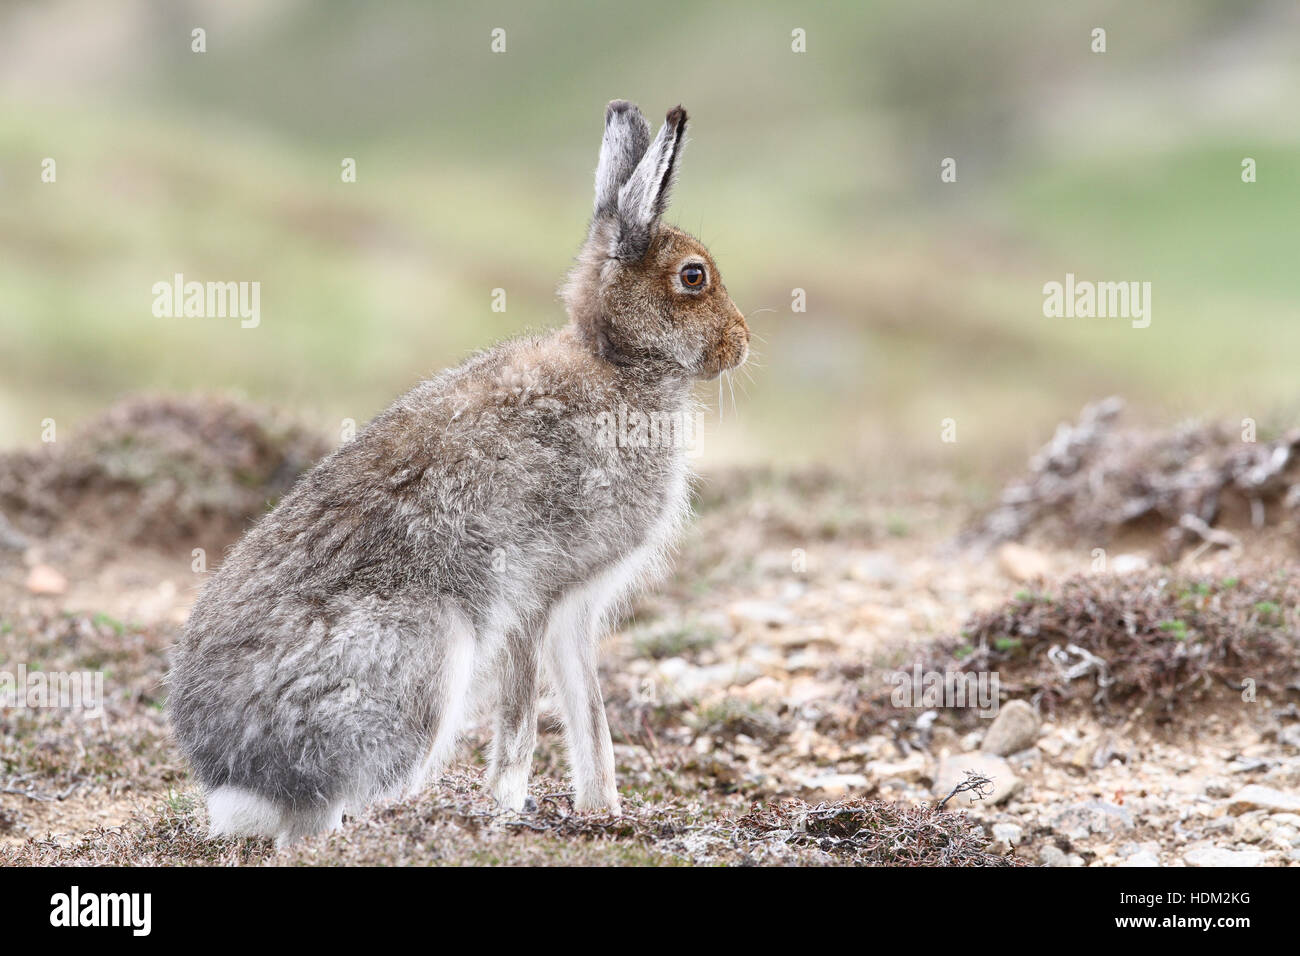 Mountain Hare (Lepus timidus) in the highlands of Scotland , in its summer brown coat, surveying the area. - Stock Image